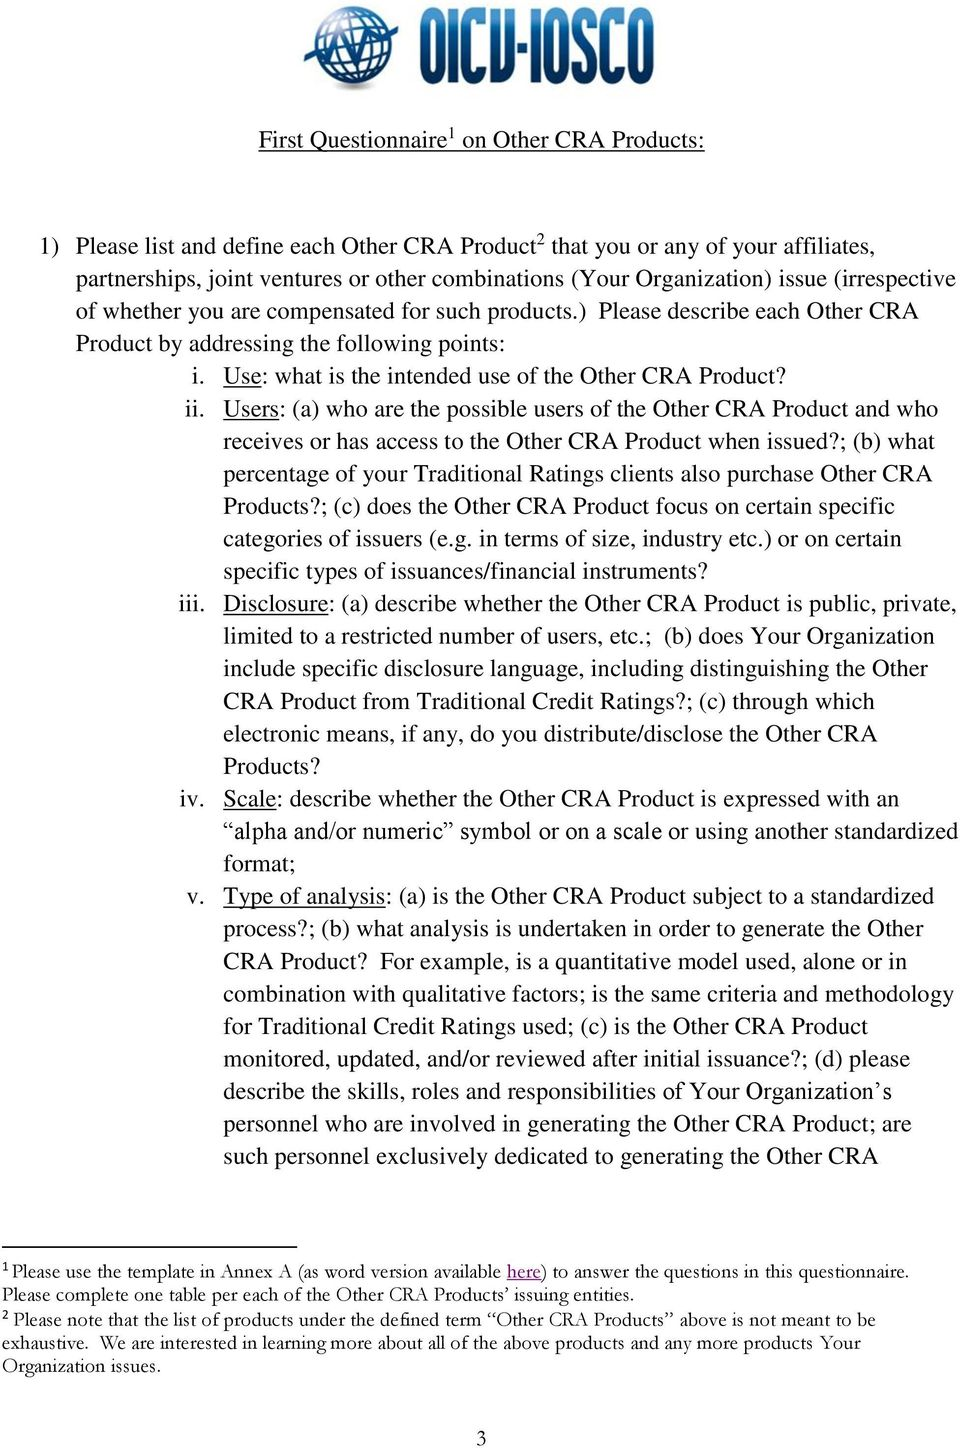 Use: what is the intended use of the Other CRA Product? ii. Users: (a) who are the possible users of the Other CRA Product and who receives or has access to the Other CRA Product when issued?